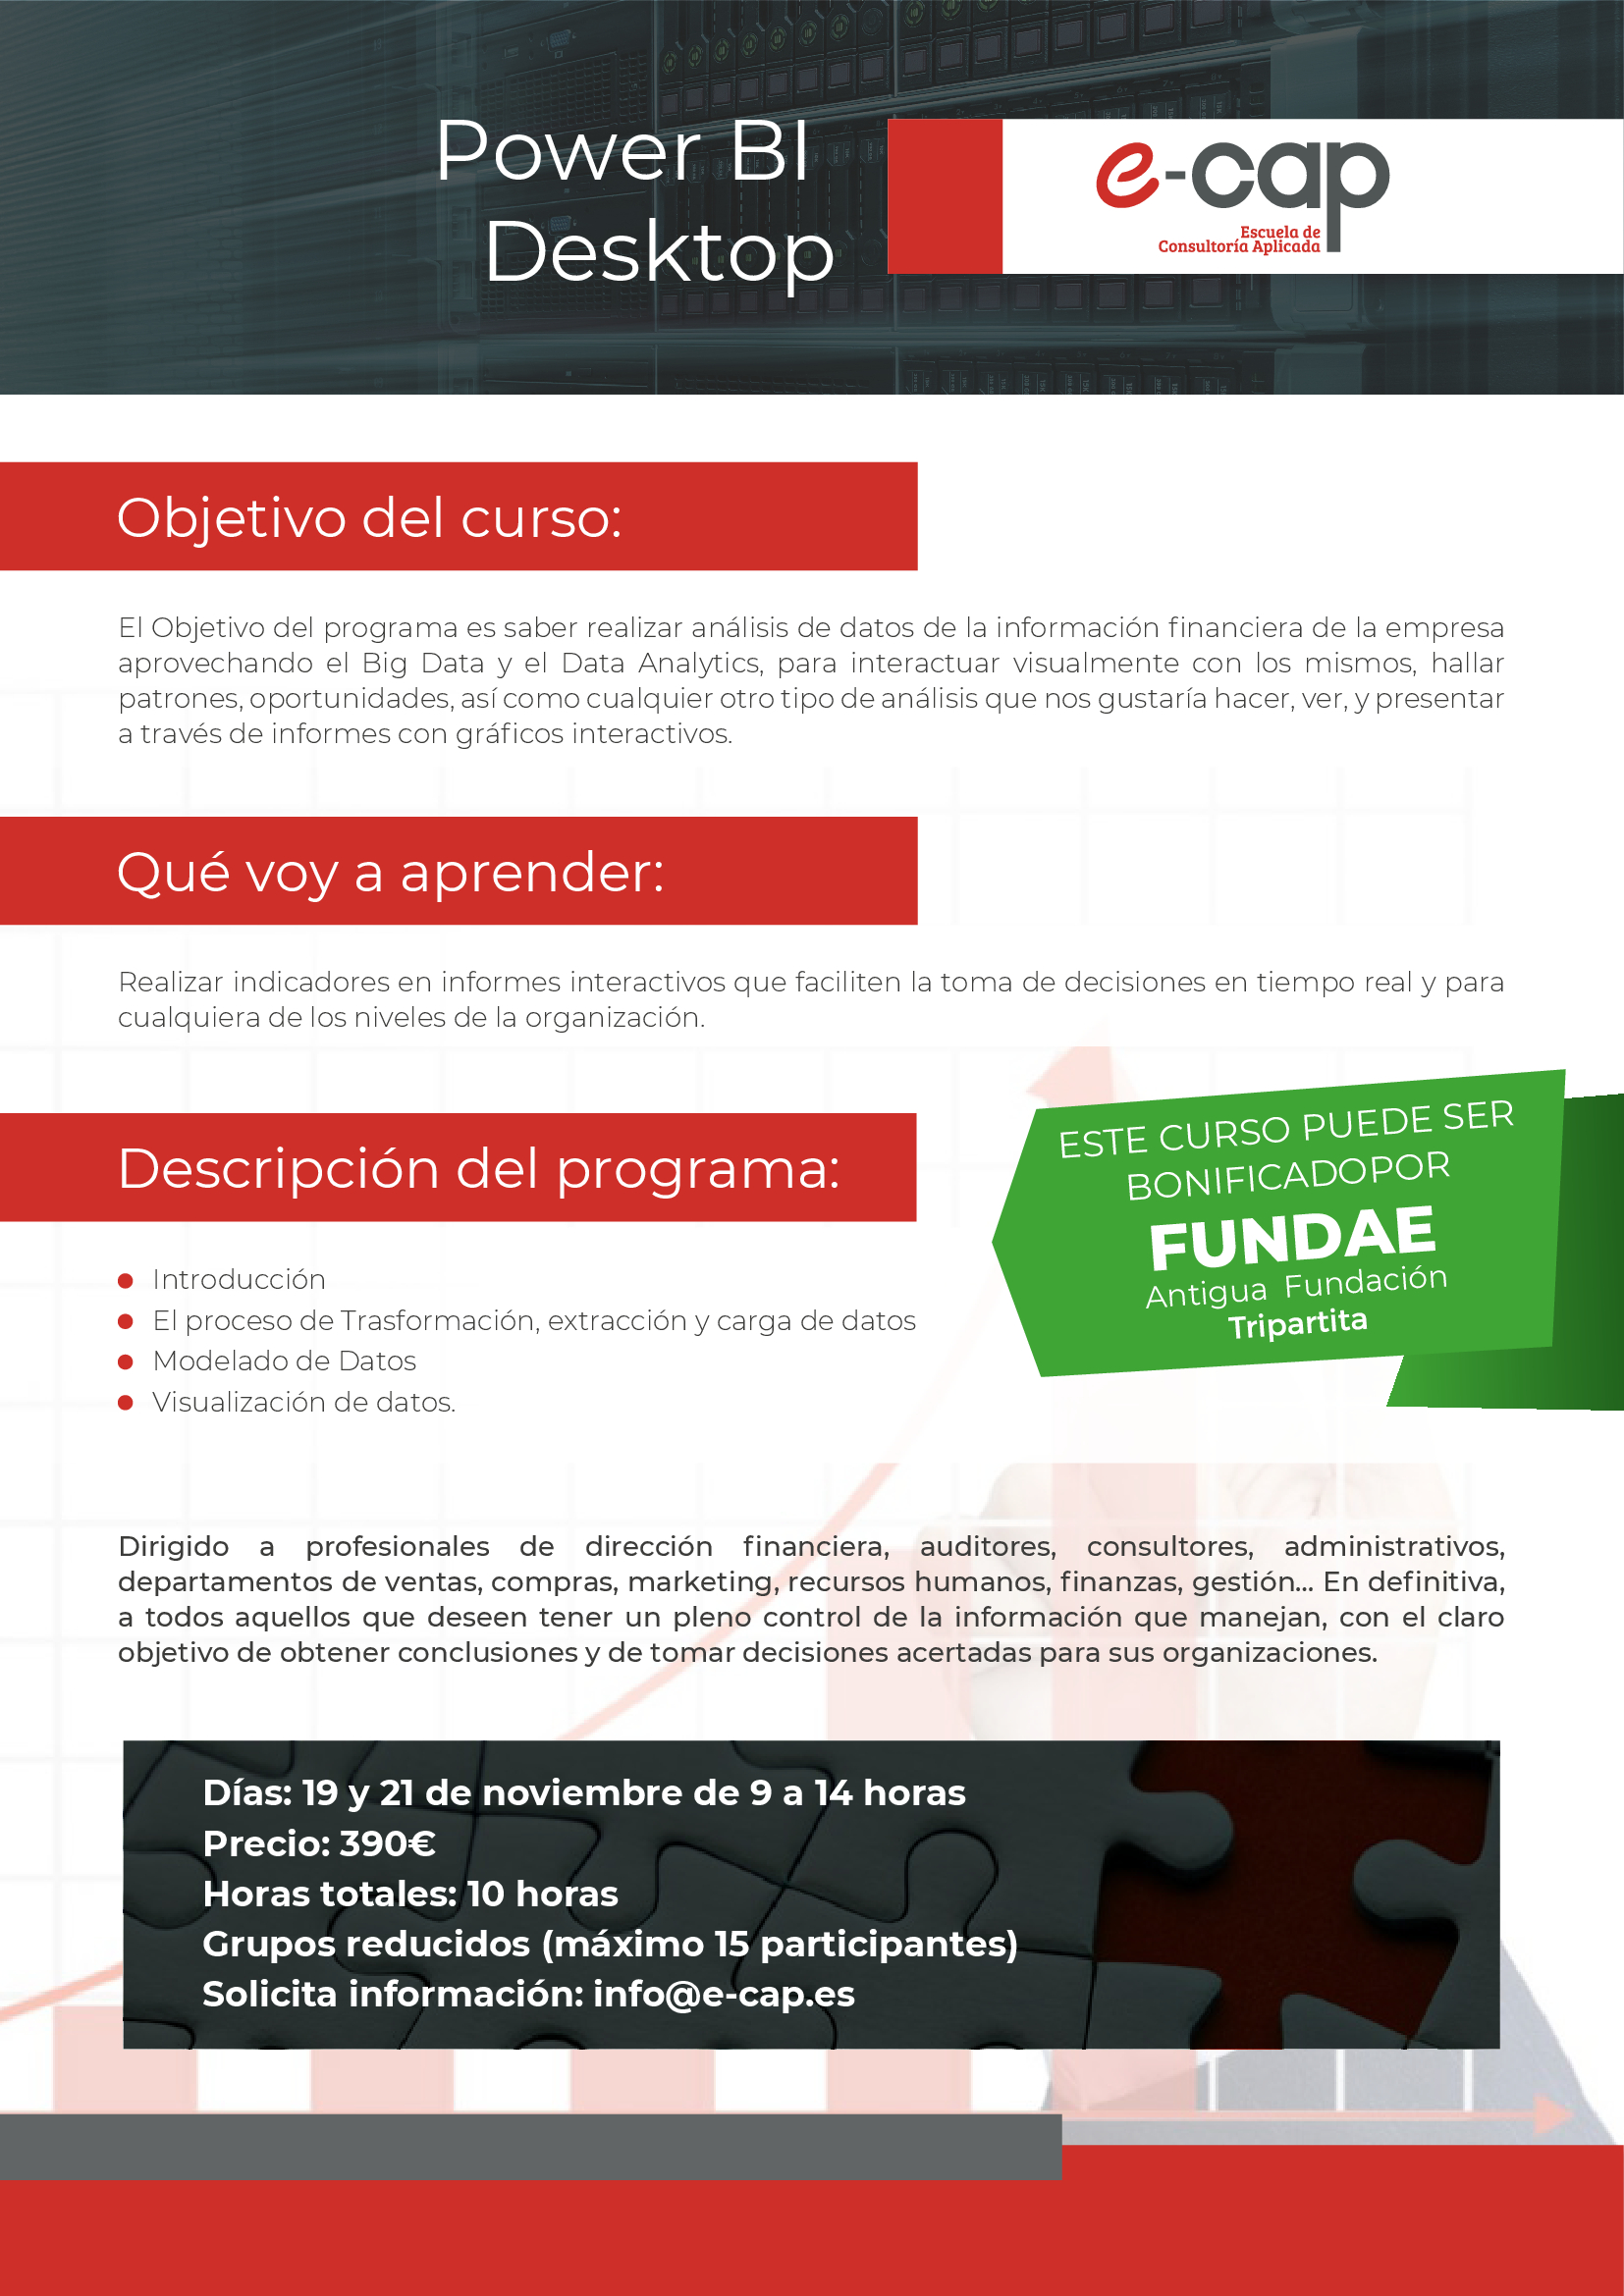 eCap curso Power Desktop